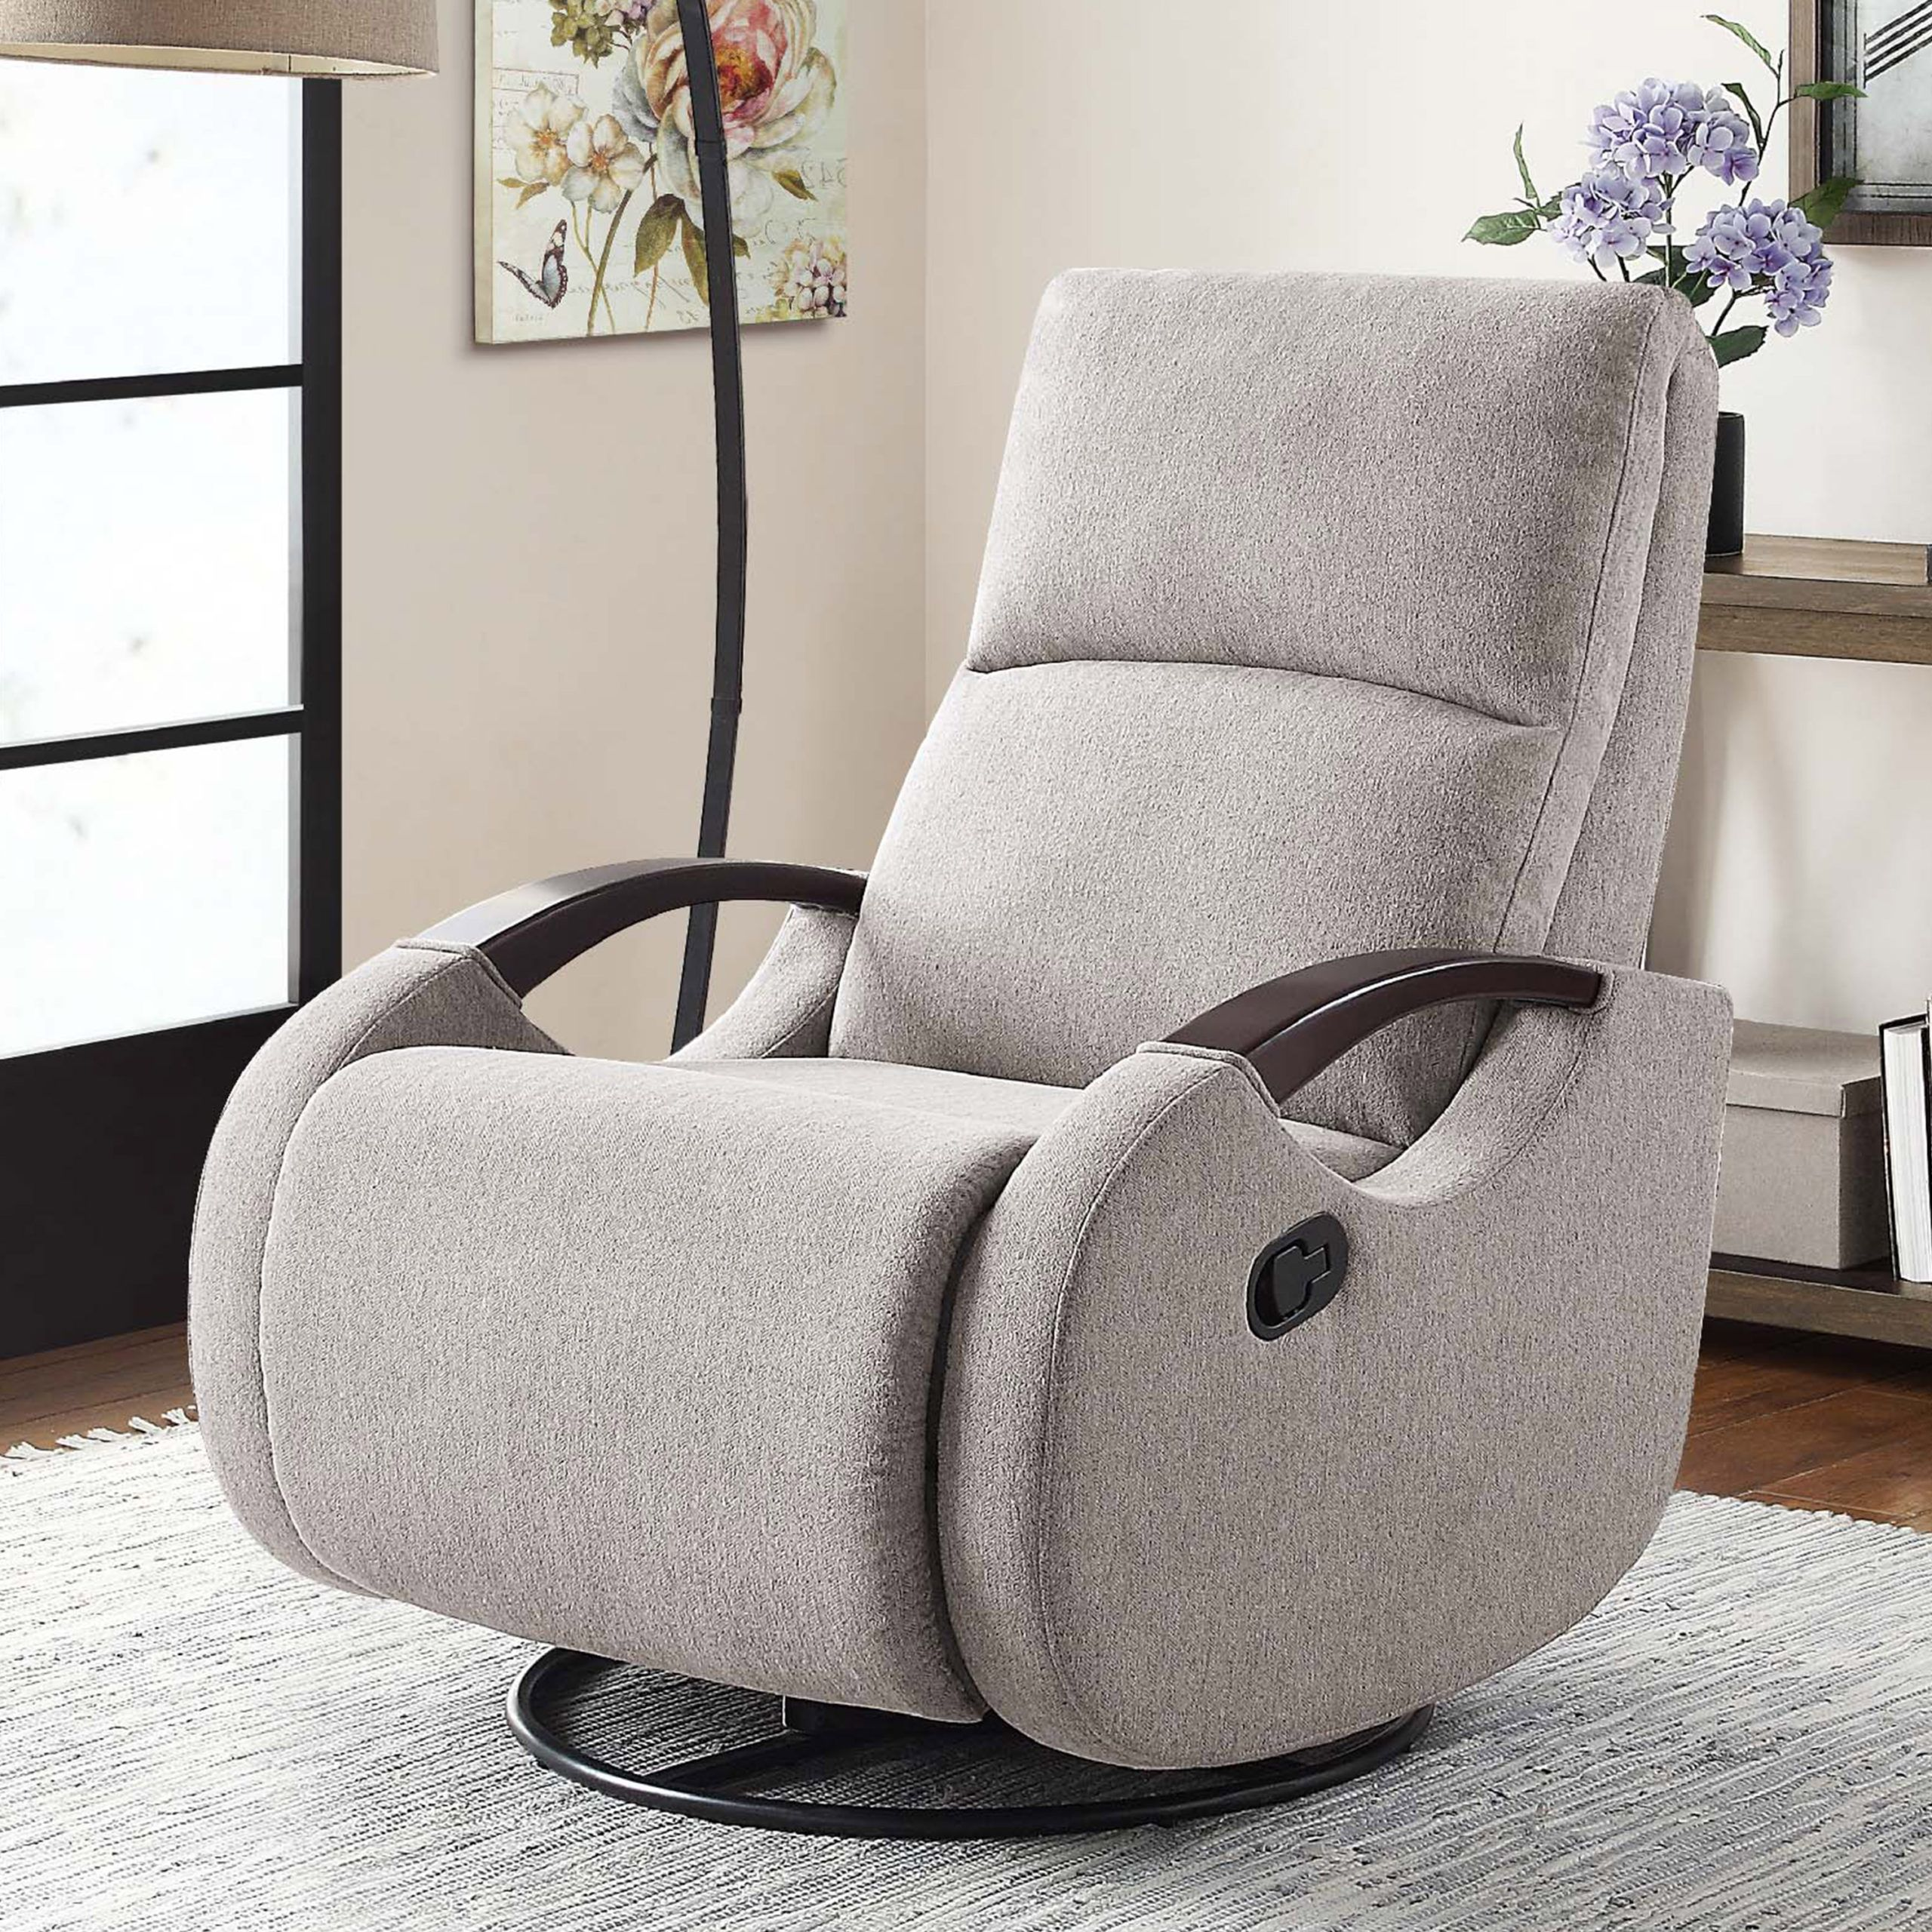 110 Unique Living Room Furniture Pieces That Amaze Everyone Pouted Com In 2021 Swivel Glider Recliner Modern Swivel Unique Living Room Furniture